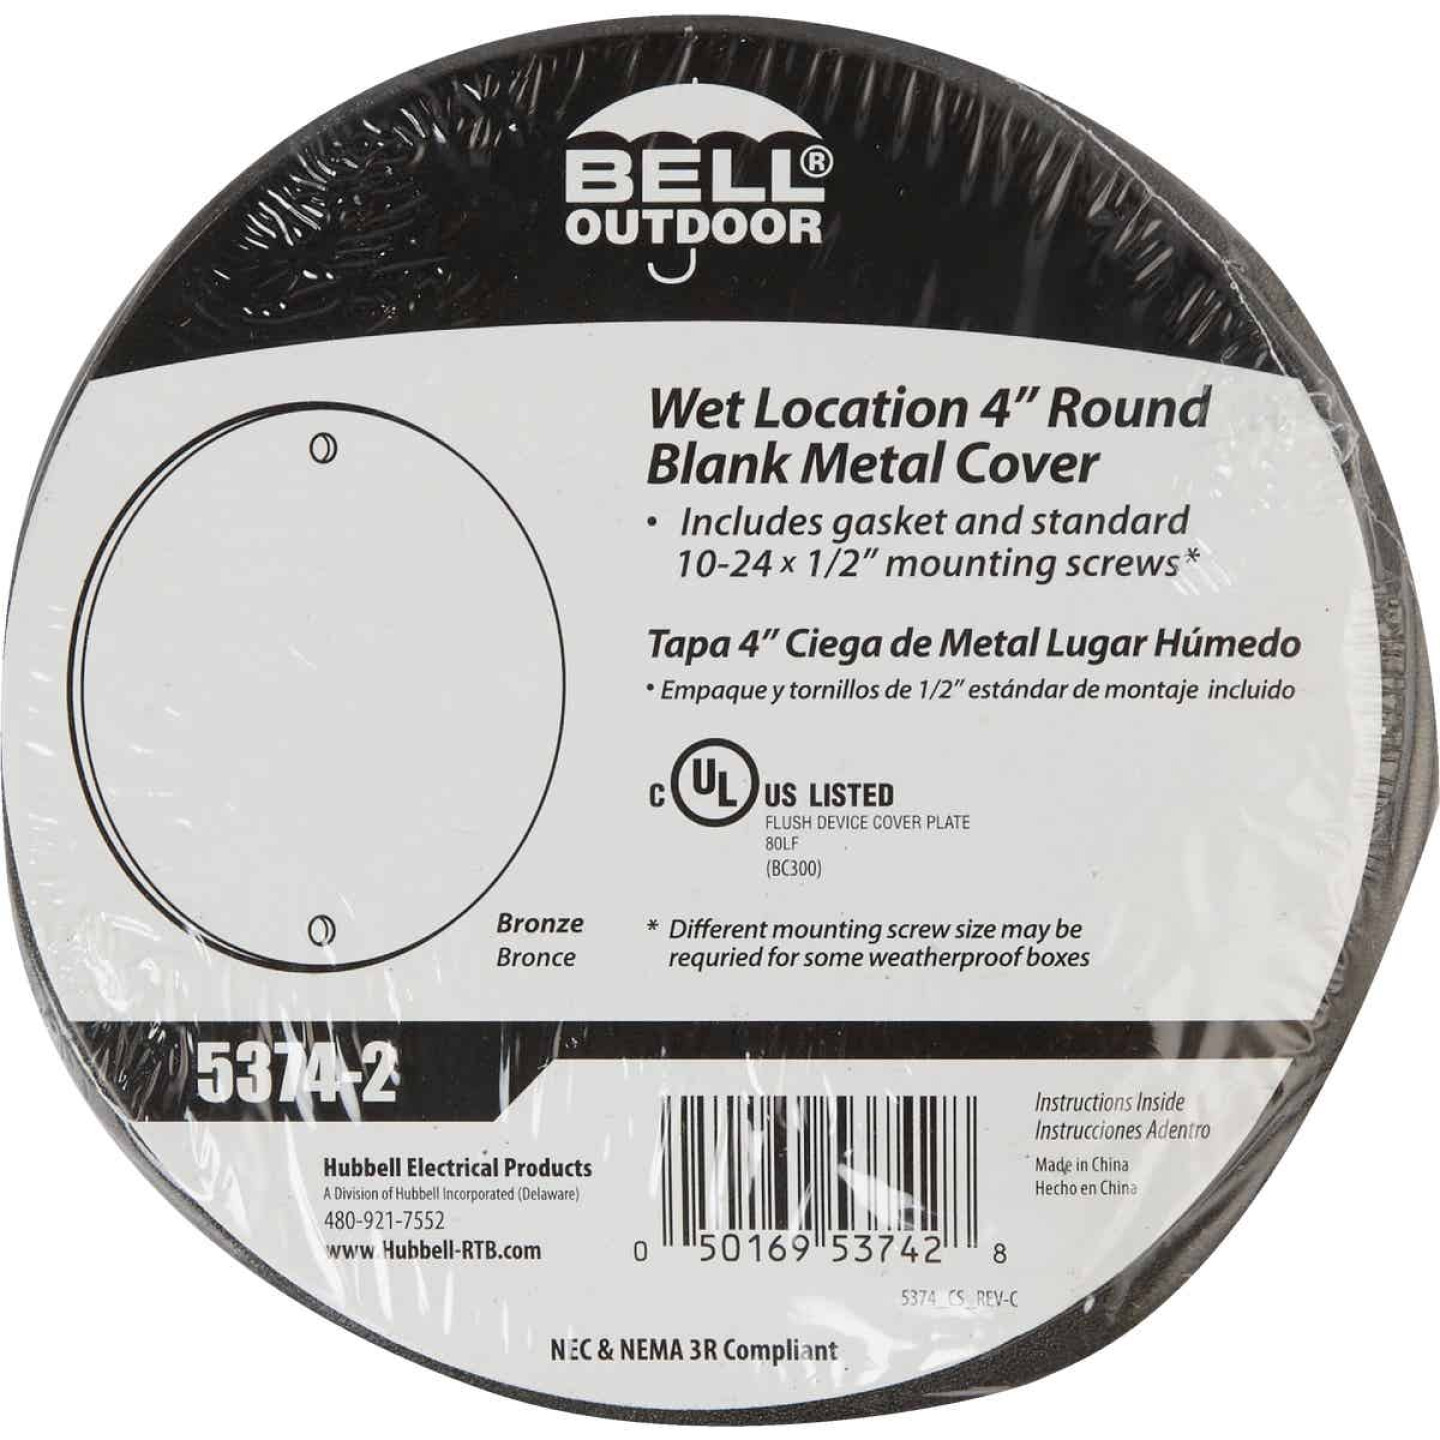 Bell Single Gang Round Die-Cast Metal Bronze Blank Outdoor Box Cover, Shrink Wrapped Image 2